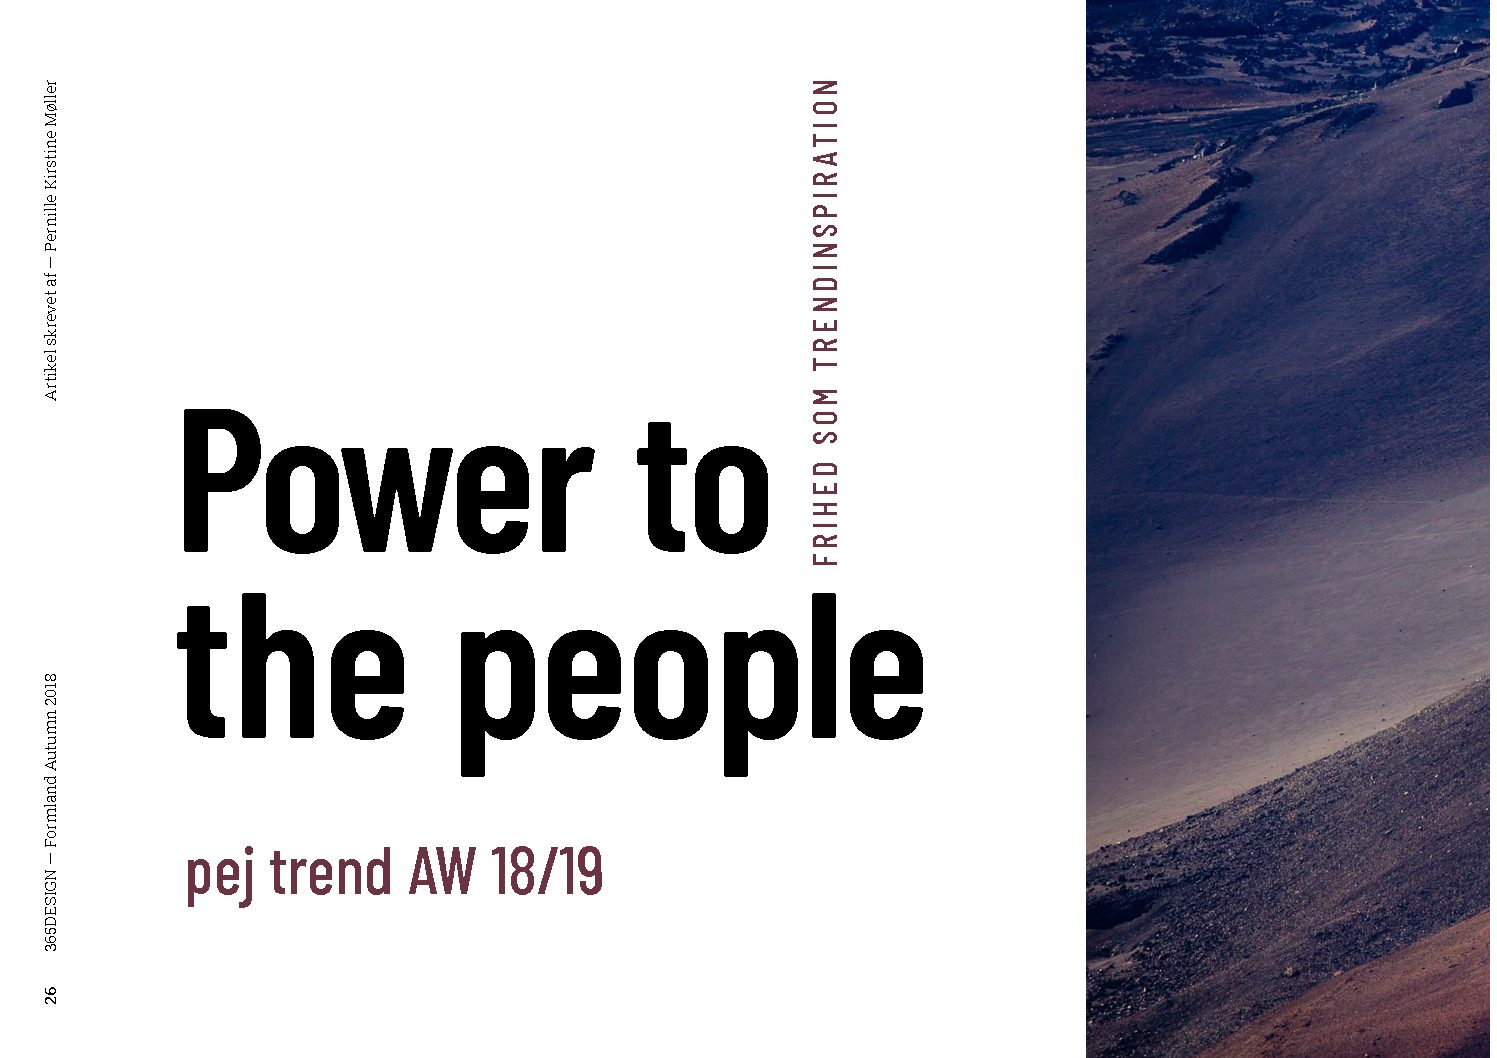 Power to the people! pej trend AW 18/19